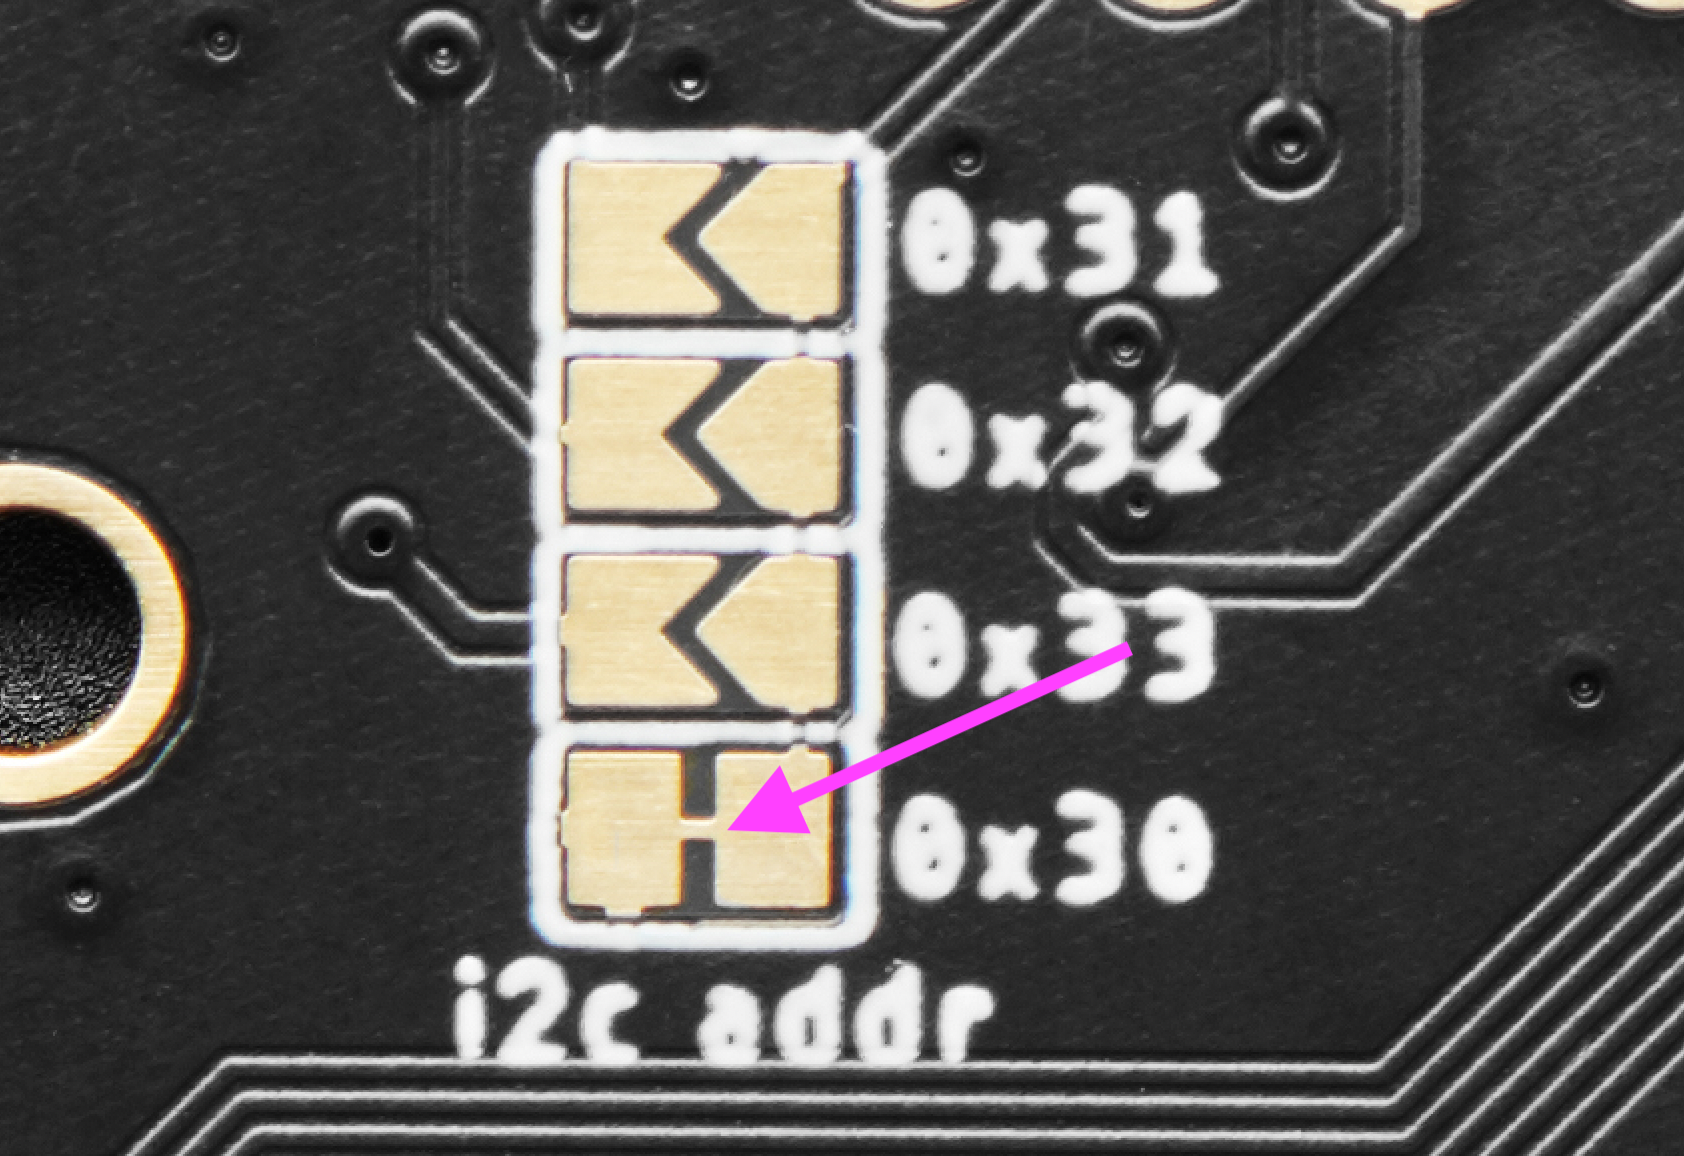 adafruit_products_IS31_jumpers_GND.png